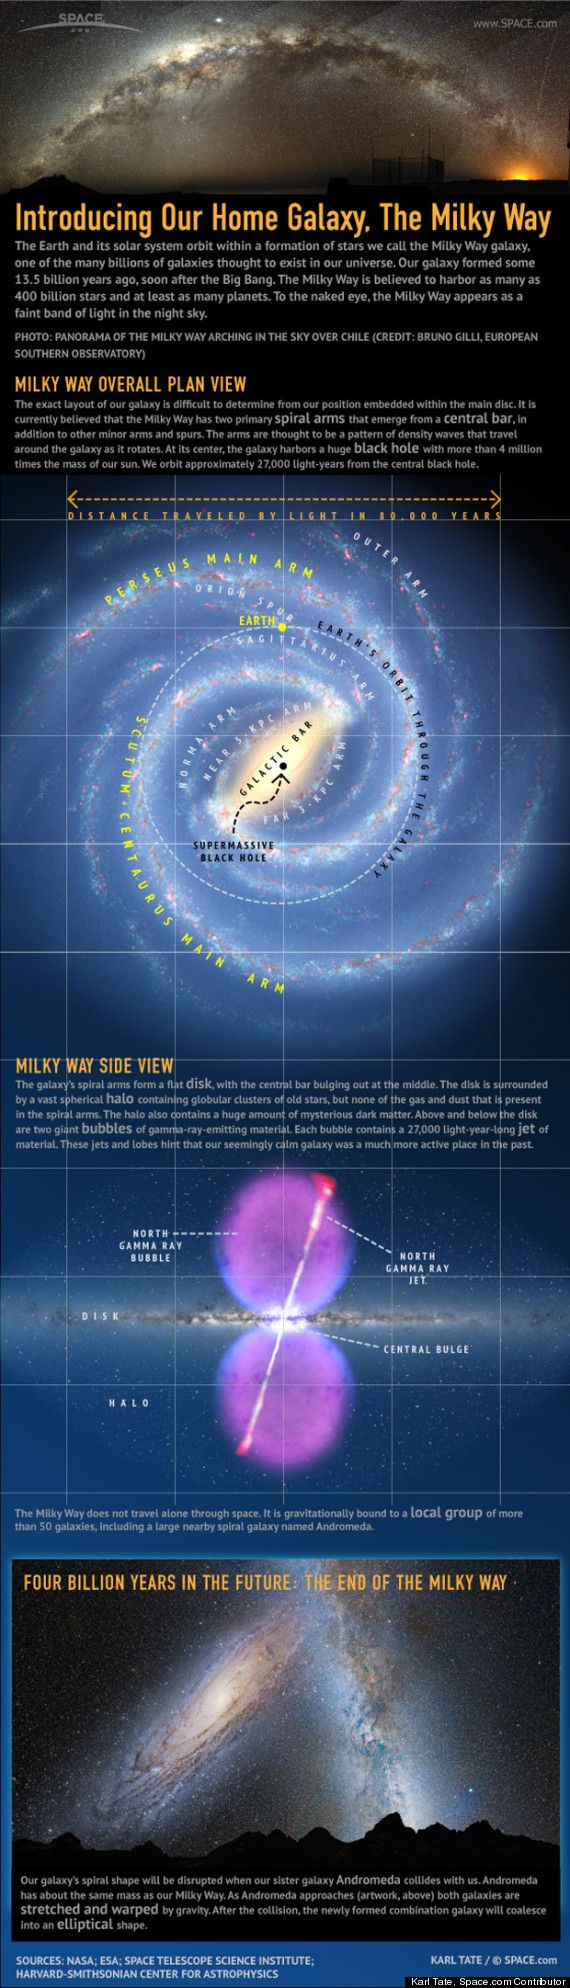 Fascinating how the universe behaves. The beauty of our our galaxy. Curiosity drives me to ponder these things...